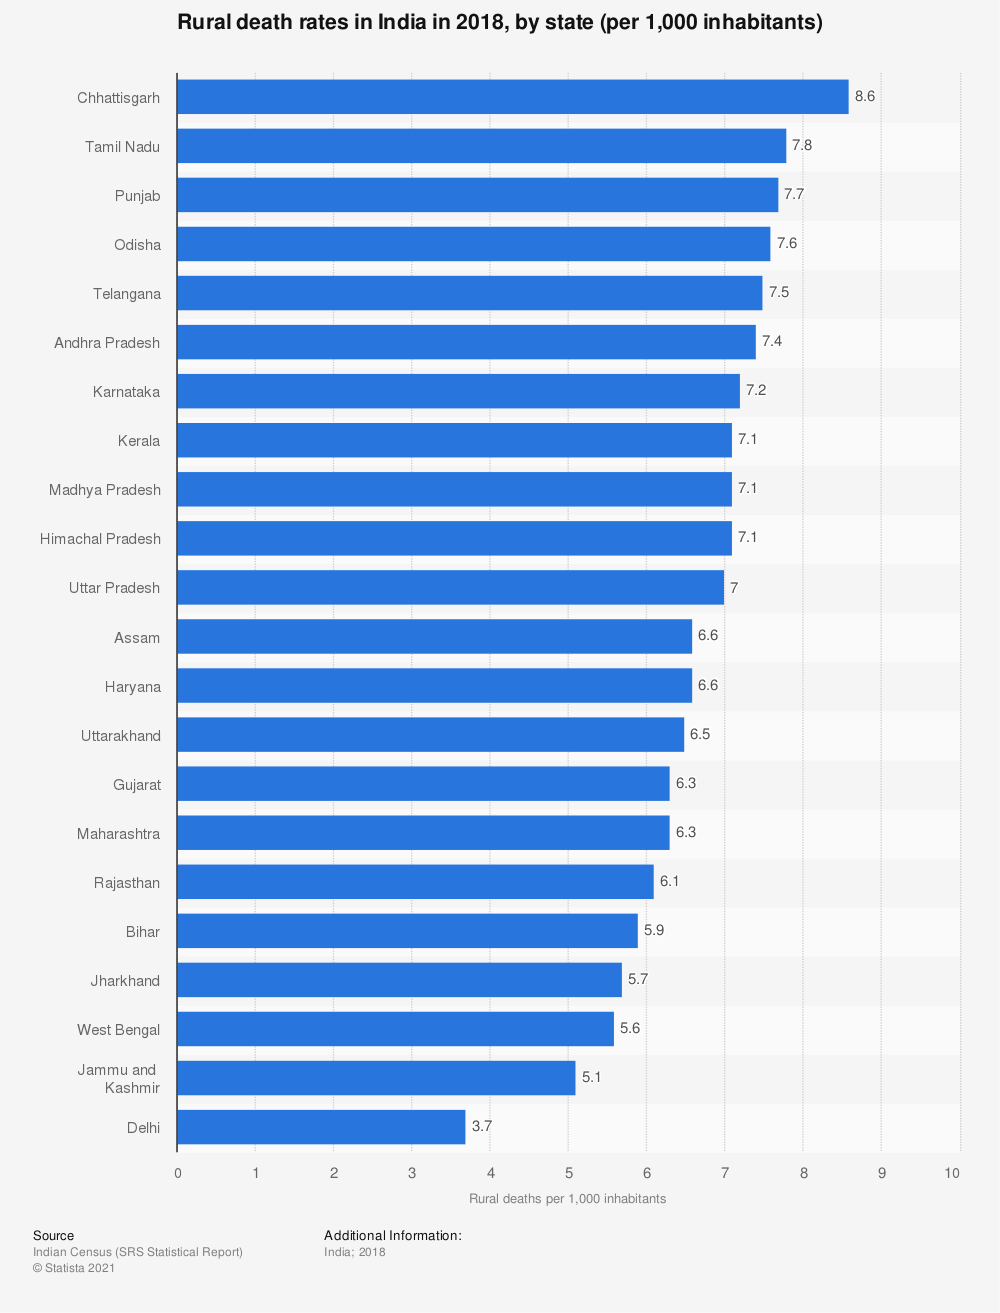 Statistic: Rural death rates in India in 2013, by state and union territory (per 1,000 inhabitants) | Statista